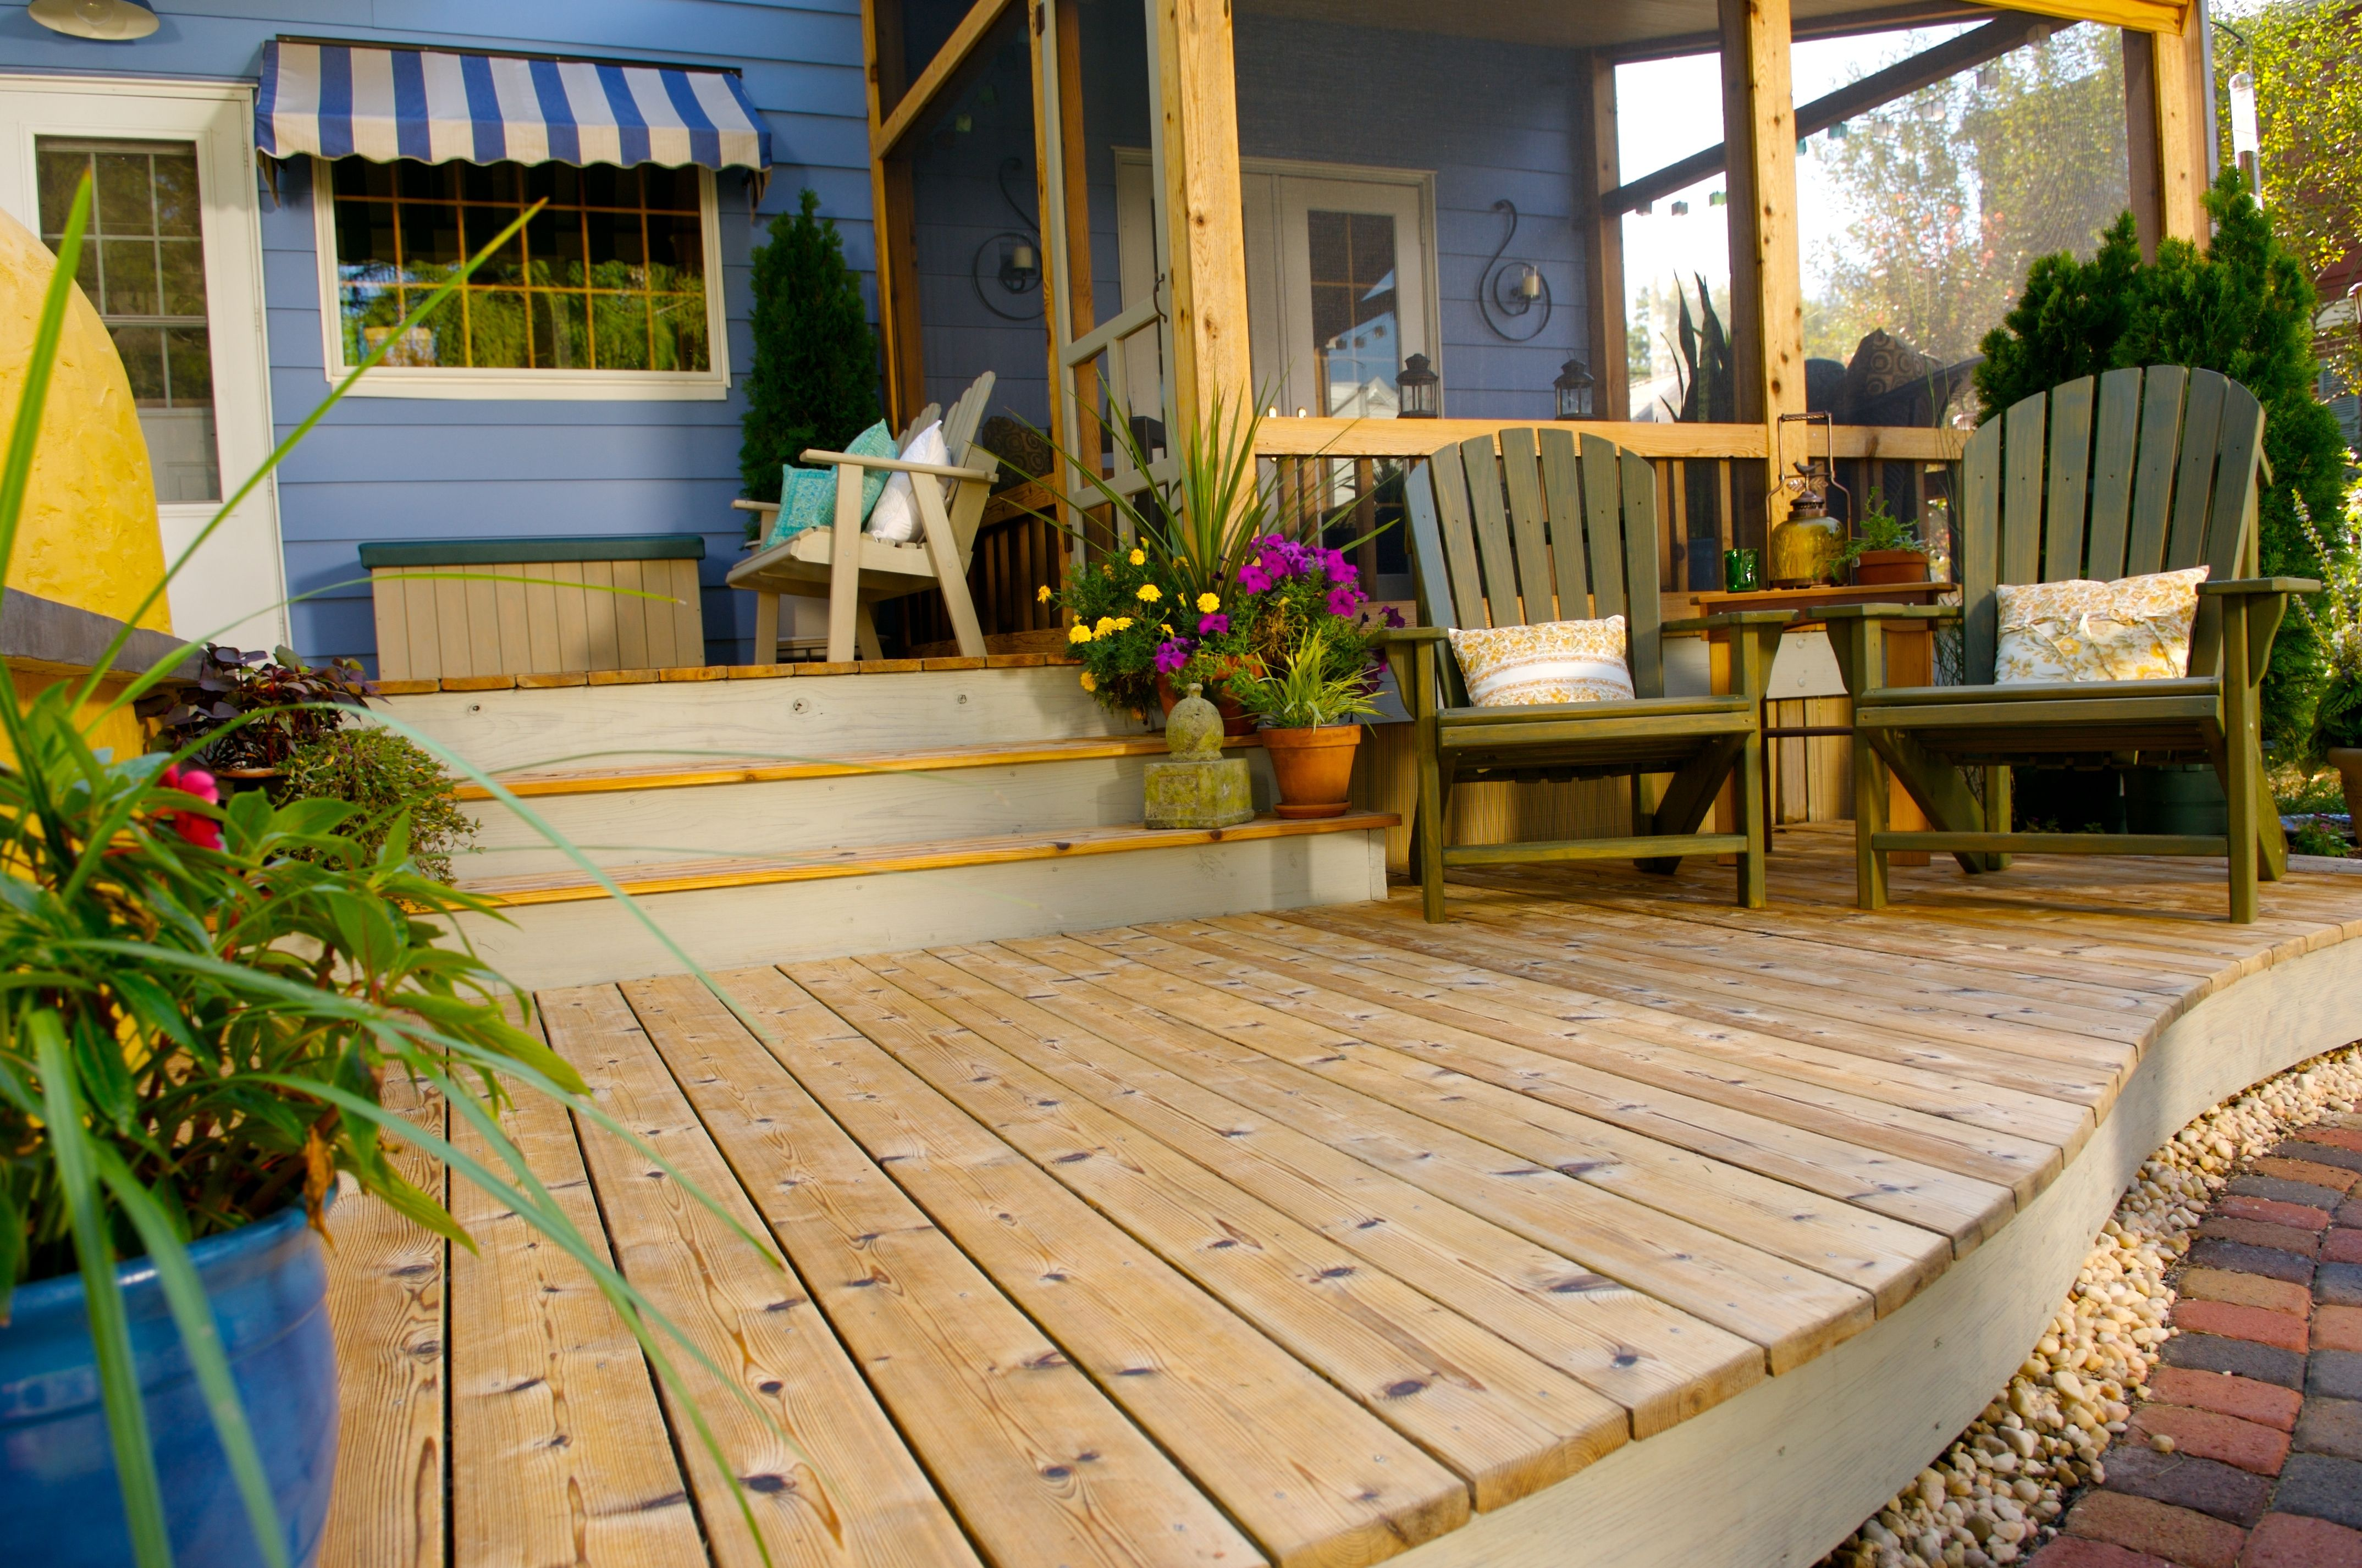 A slight curve adds impact on the lower level of the deck and a slight curve adds impact on the lower level of the deck and thompsons water seal deck house stains add subtle color to contrast to the wood which was baanklon Gallery